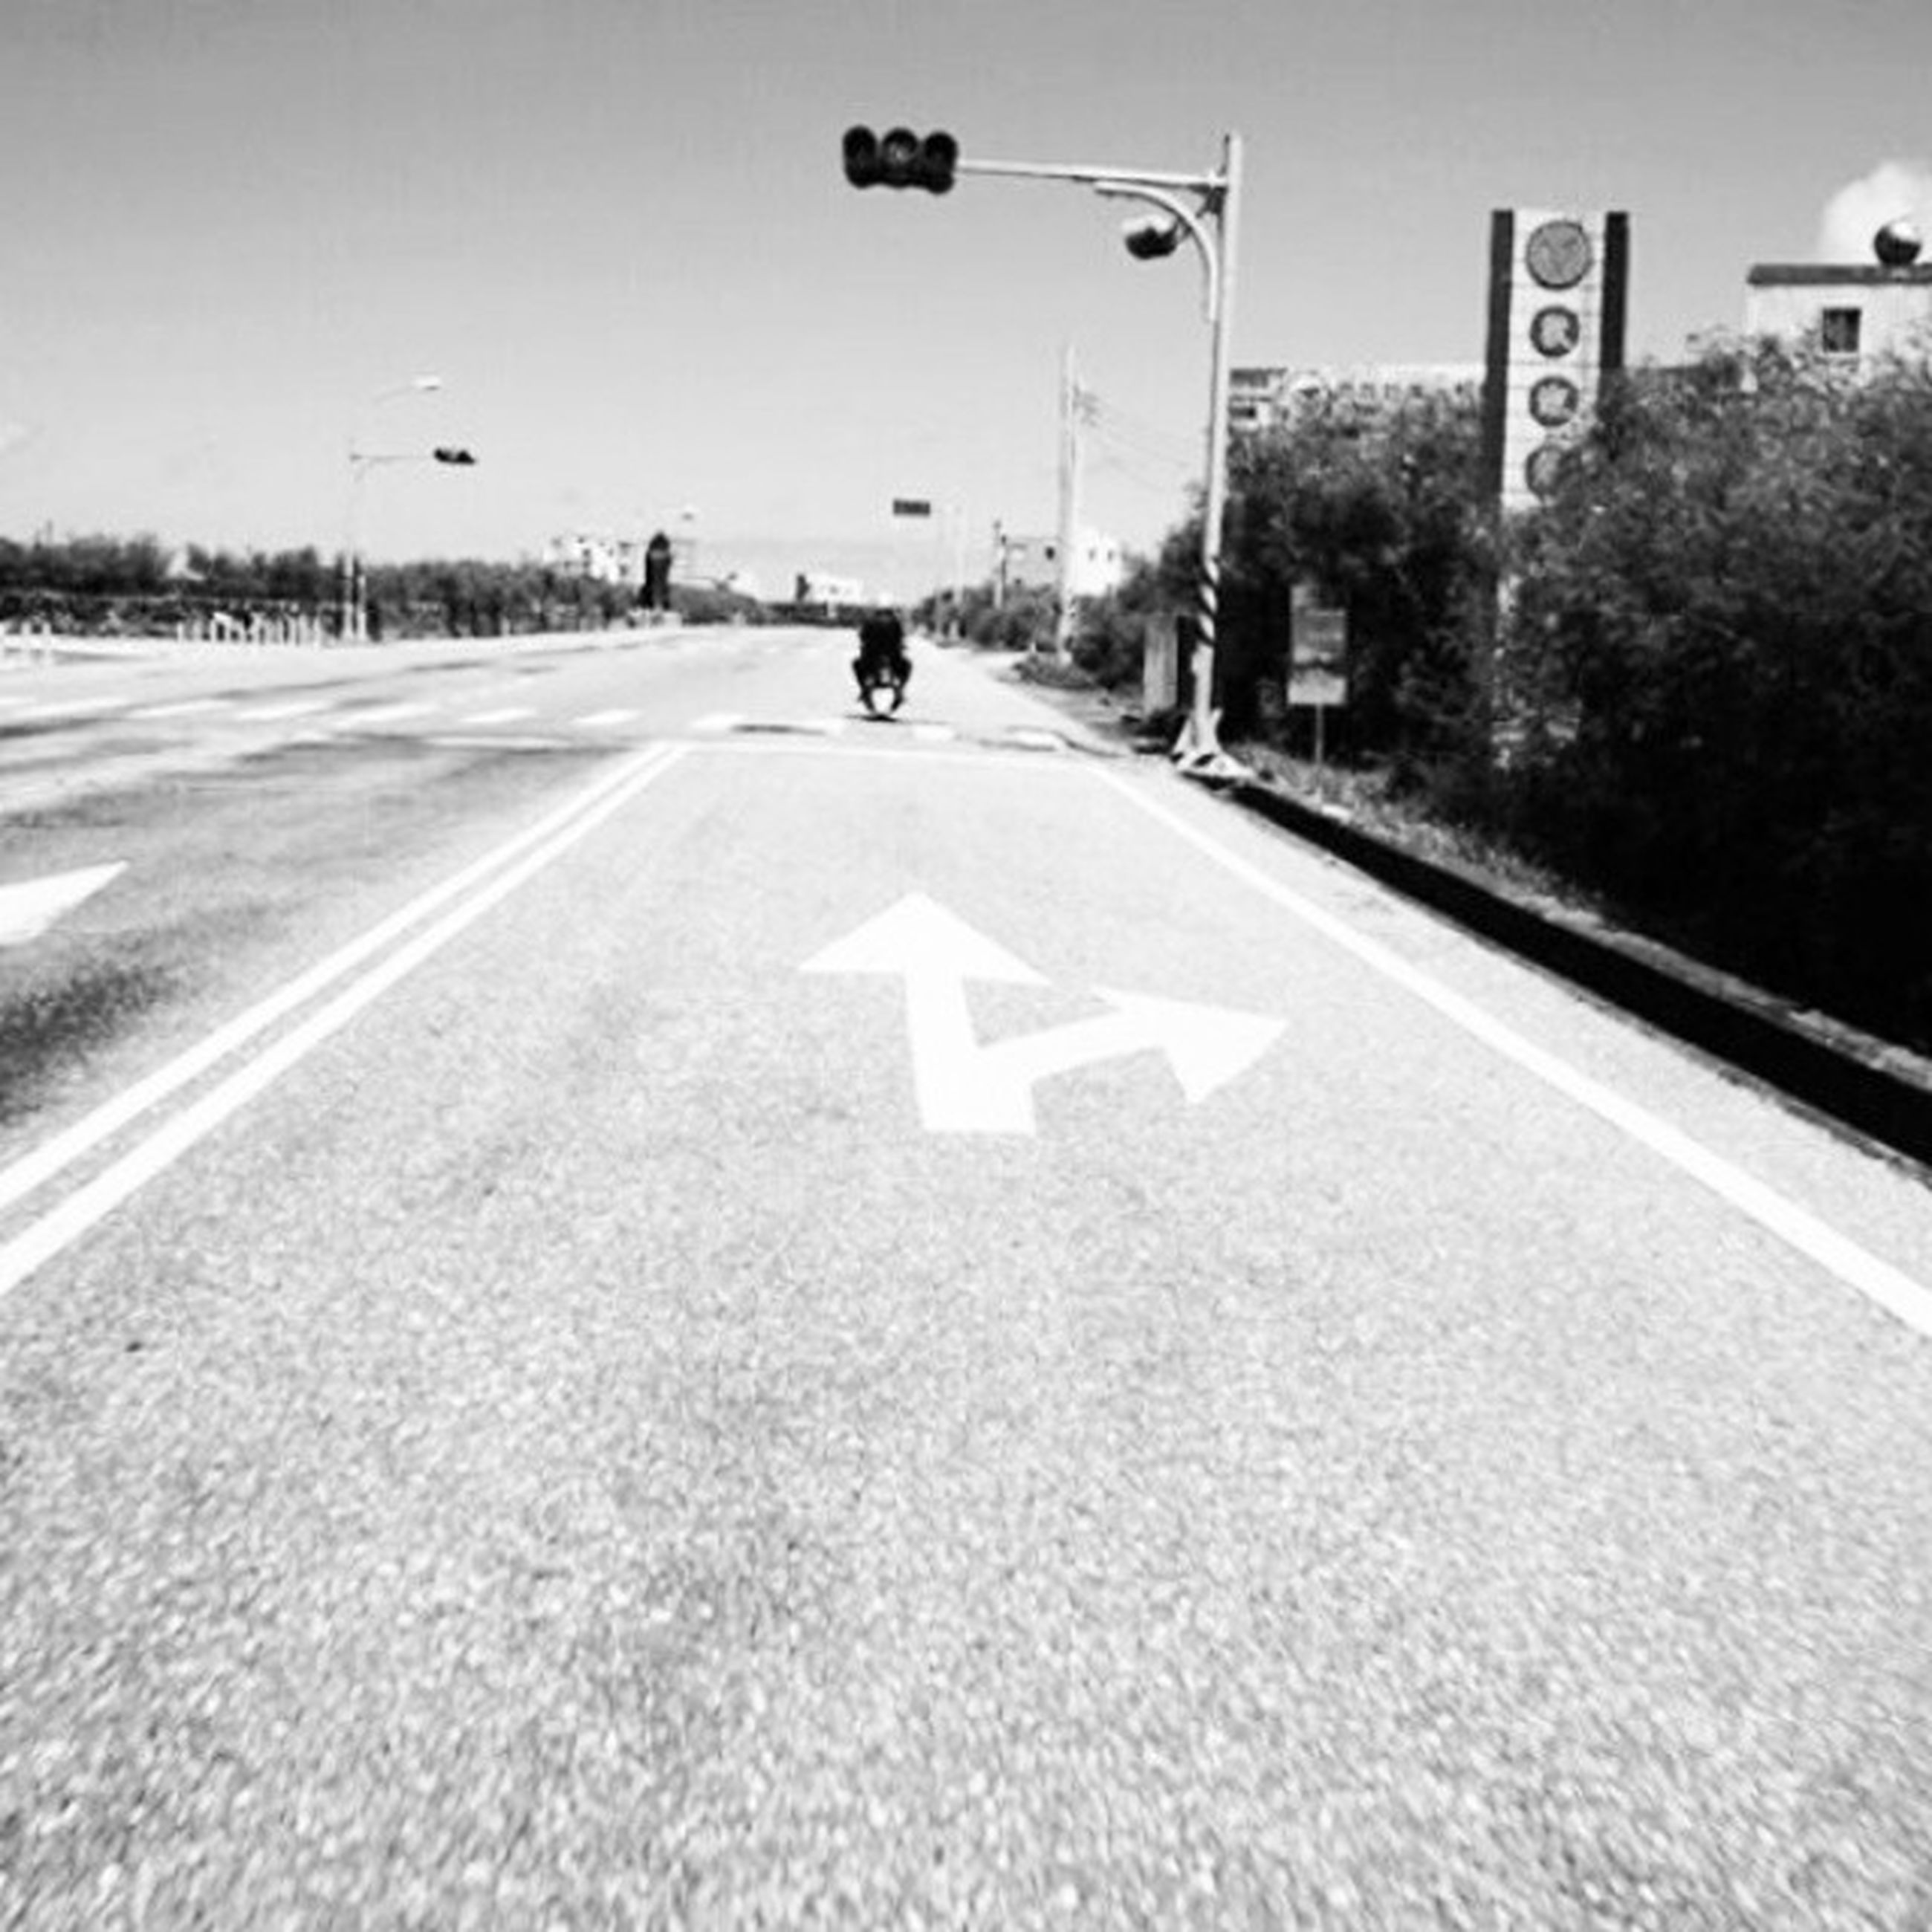 transportation, road marking, the way forward, road sign, road, guidance, communication, arrow symbol, sign, text, information sign, western script, directional sign, diminishing perspective, street, asphalt, vanishing point, direction, tree, arrow sign